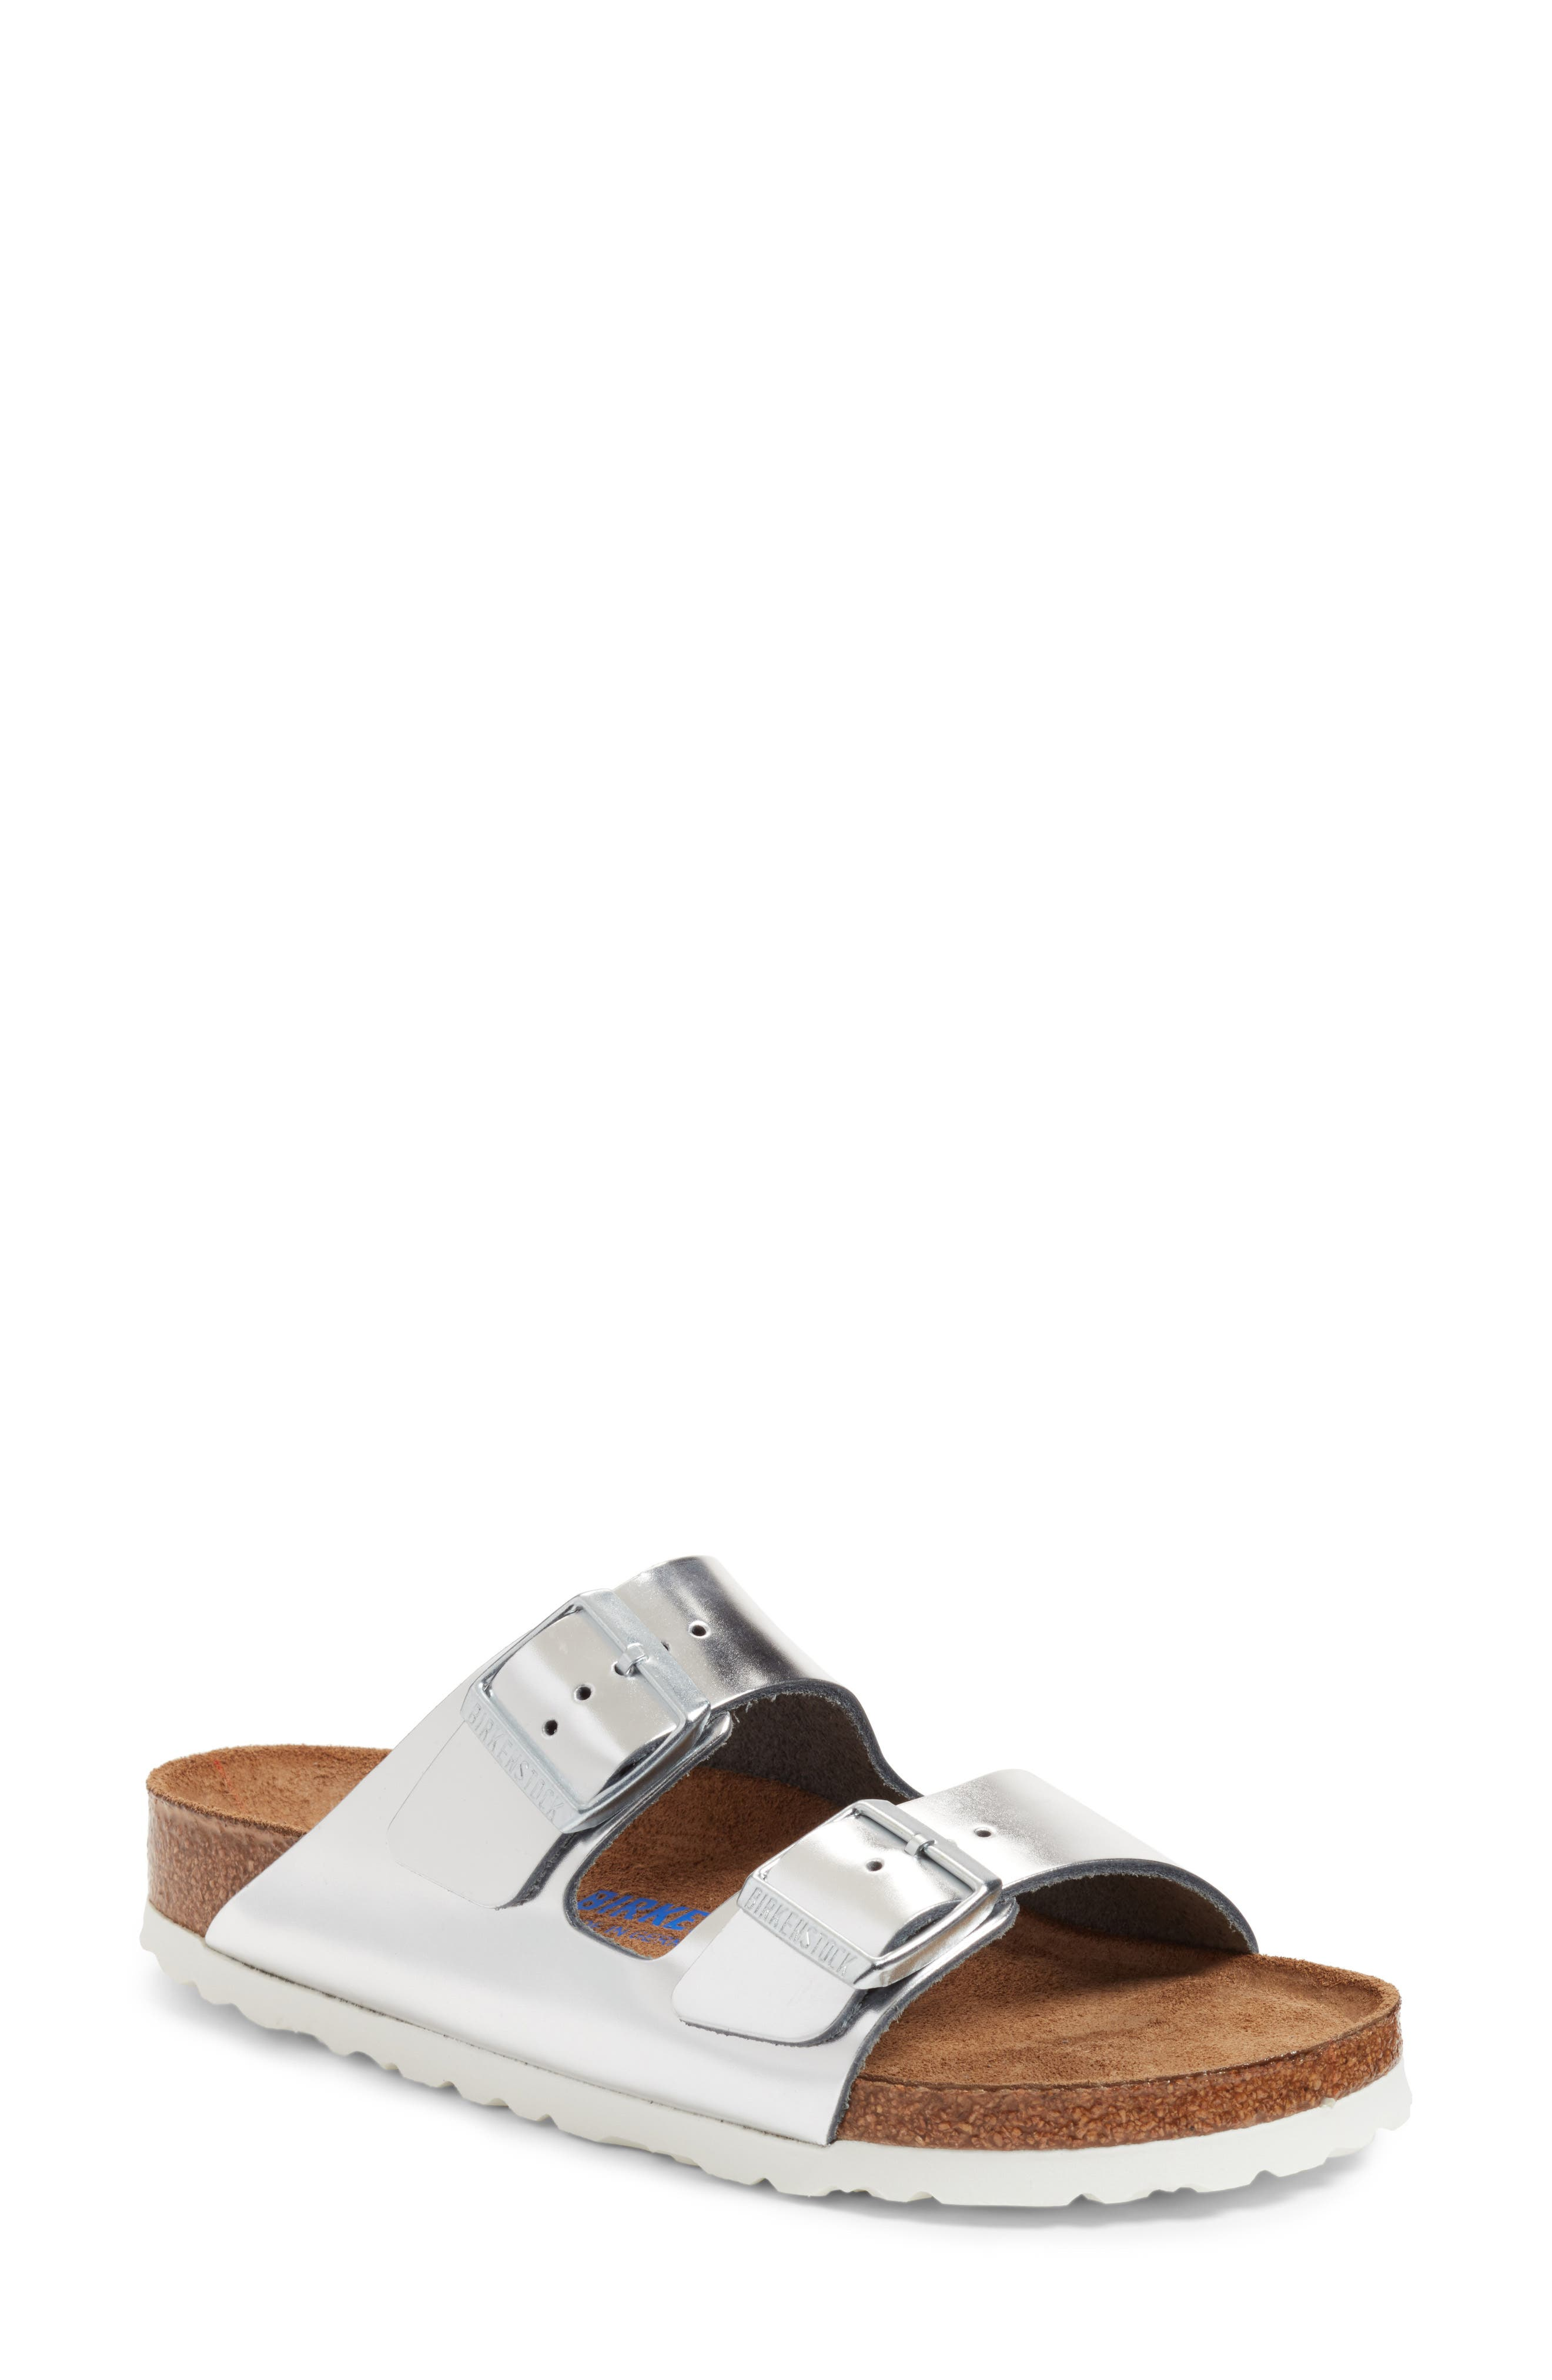 Sandals for Women On Sale, Silver, Leather, 2017, 3.5 4 4.5 5.5 7.5 Tod's